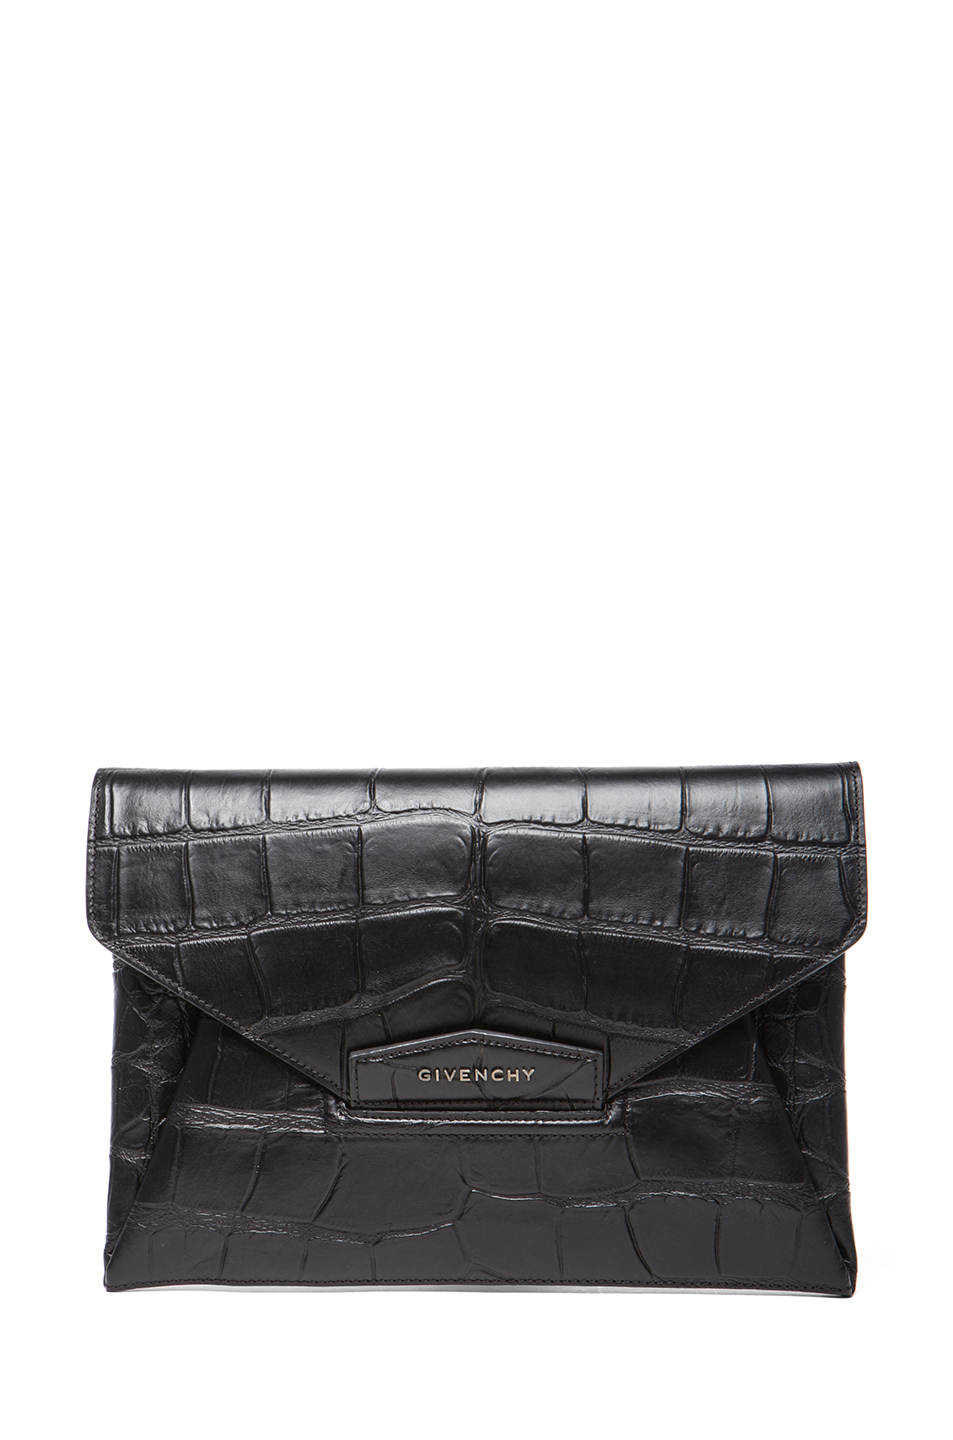 GIVENCHY | Medium Stamped Croc Antigona Envelope in Black